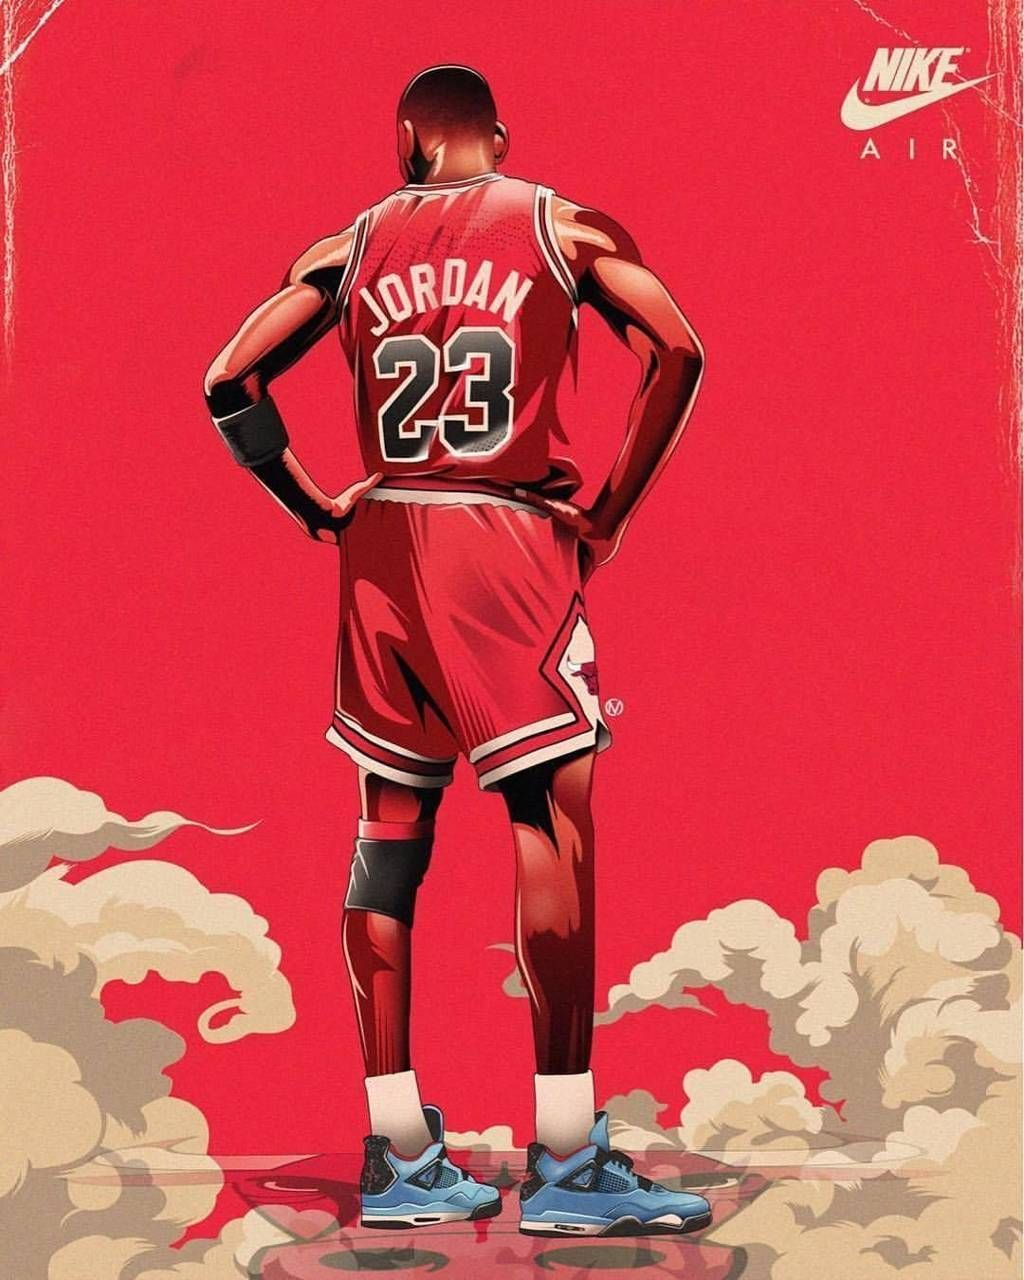 Download Jordan 23 Wallpaper By Bigpapi 89 2b Free On Zedge Now Browse Millions Of Popular Michael Jordan Art Michael Jordan Basketball Nba Wallpapers